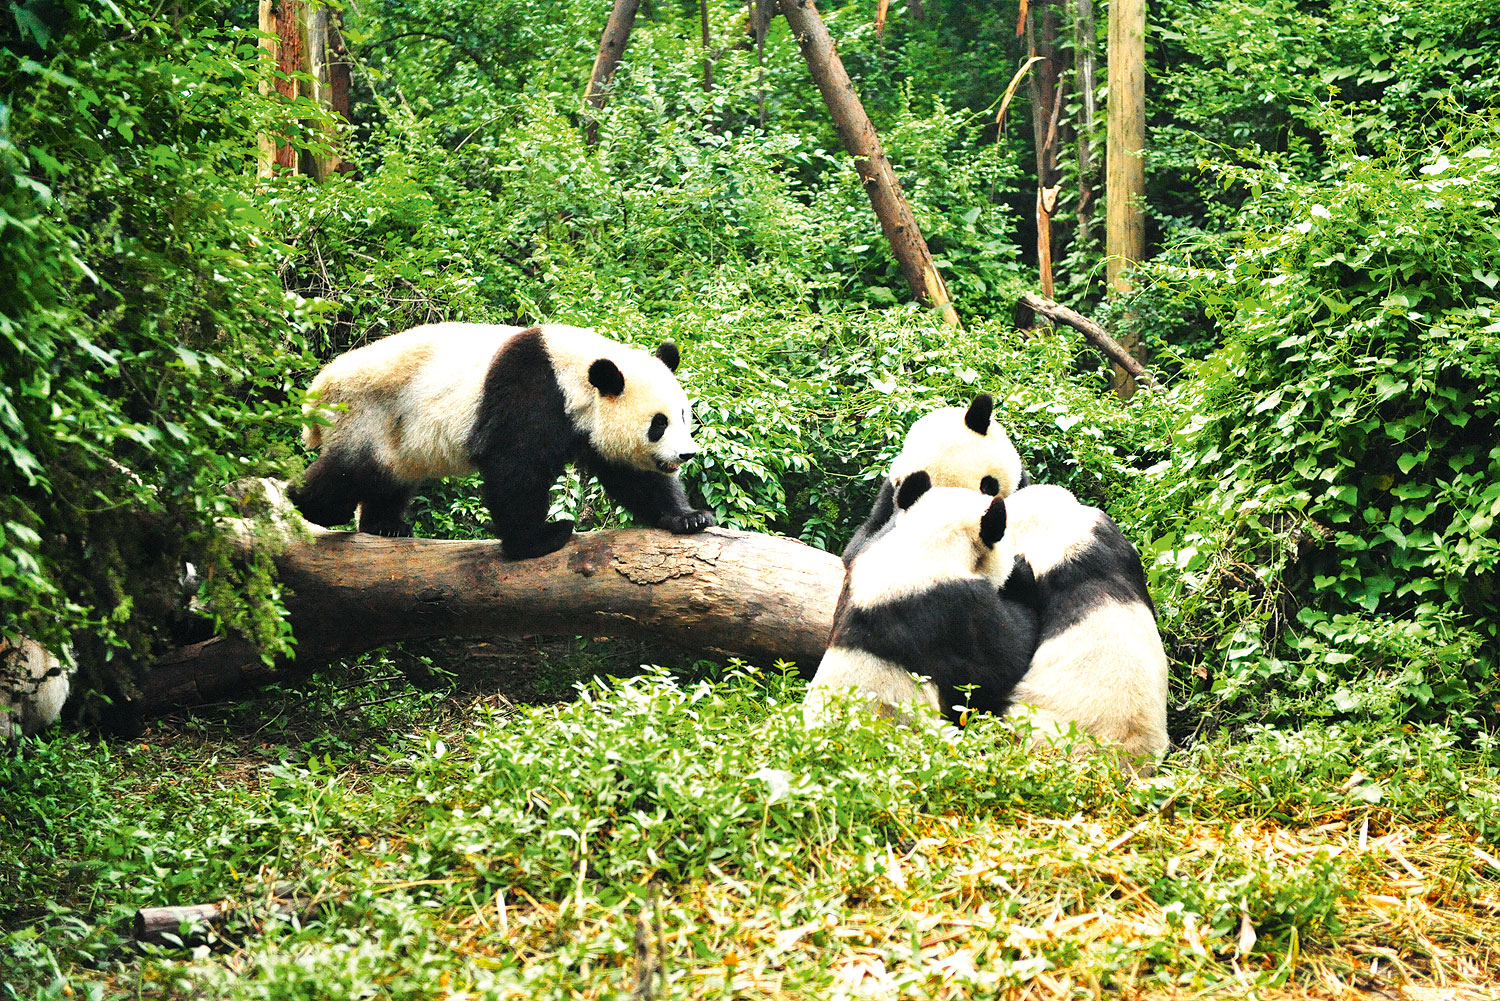 Chengdu Research Base of Giant Panda Breeding (or Chengdu Panda Base), which lies north of the city